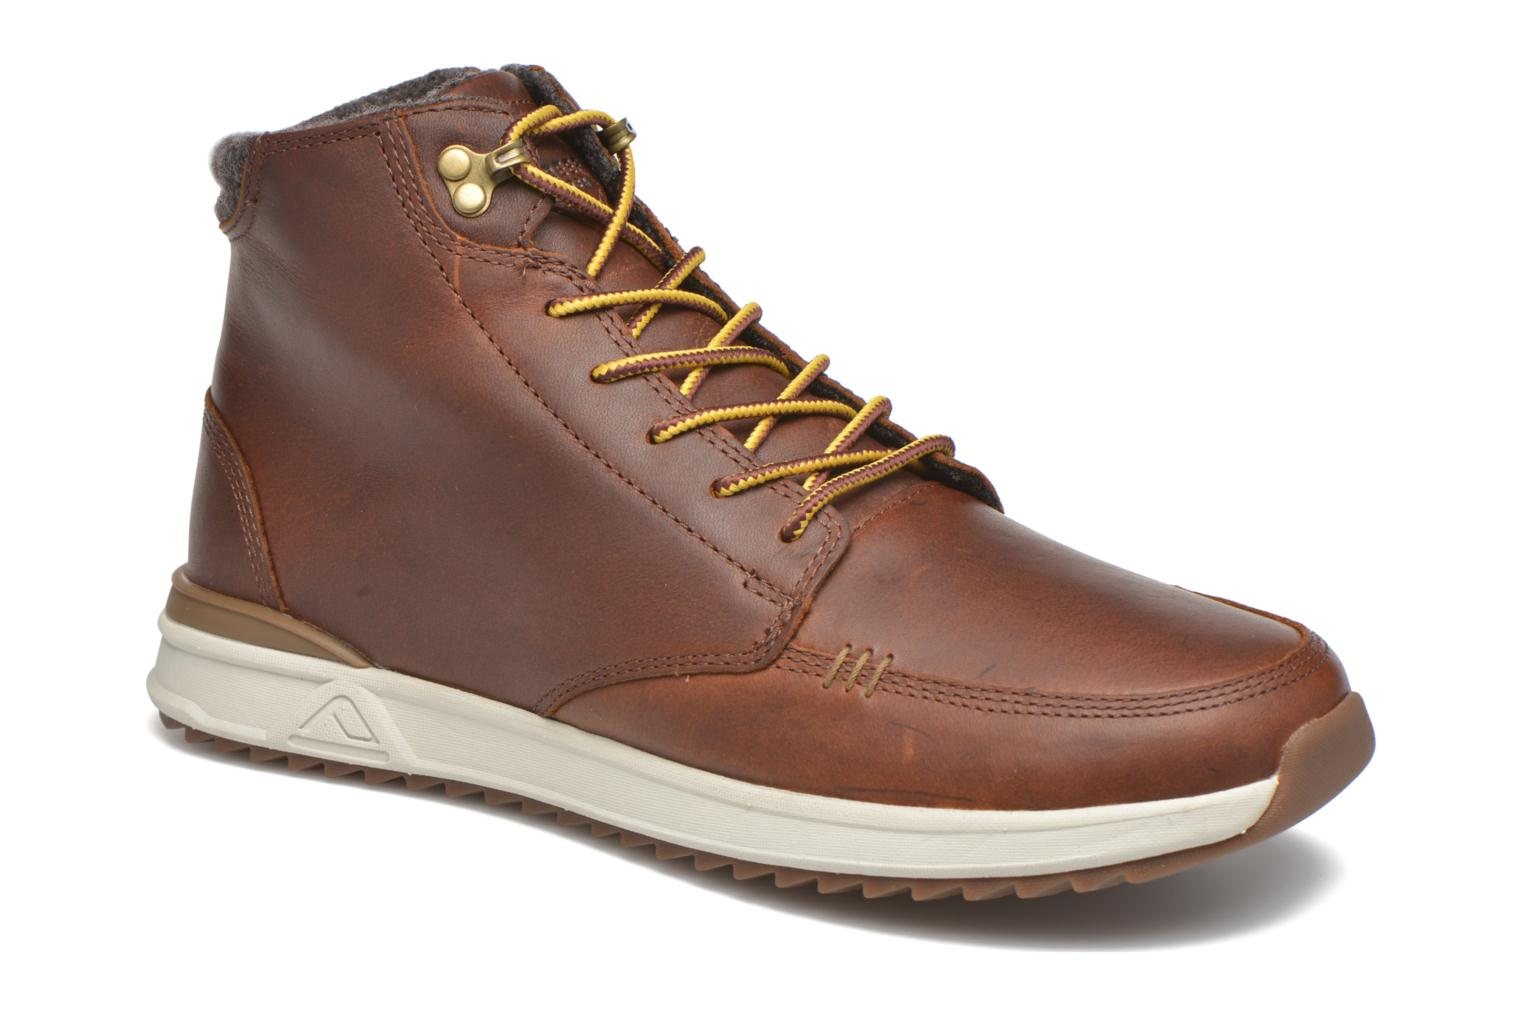 Rover Hi Boot Brown